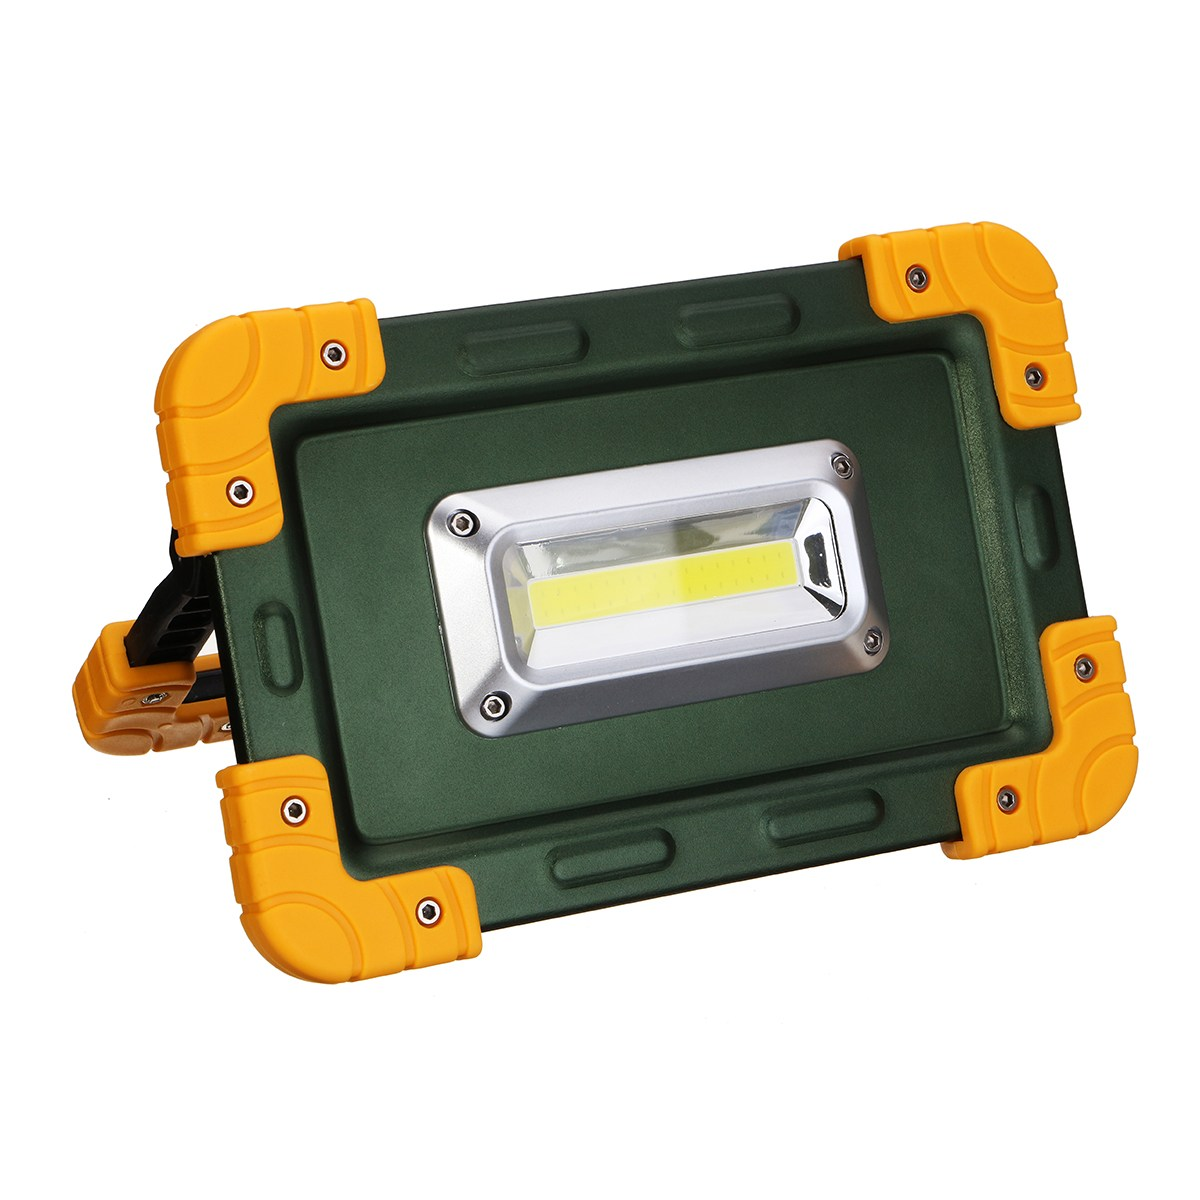 NEW Safurance Outdoor 30W LED Light Work Lamp Flood Light USB Rechargeable Roadway Safety Traffic Light new safurance welders dual leather